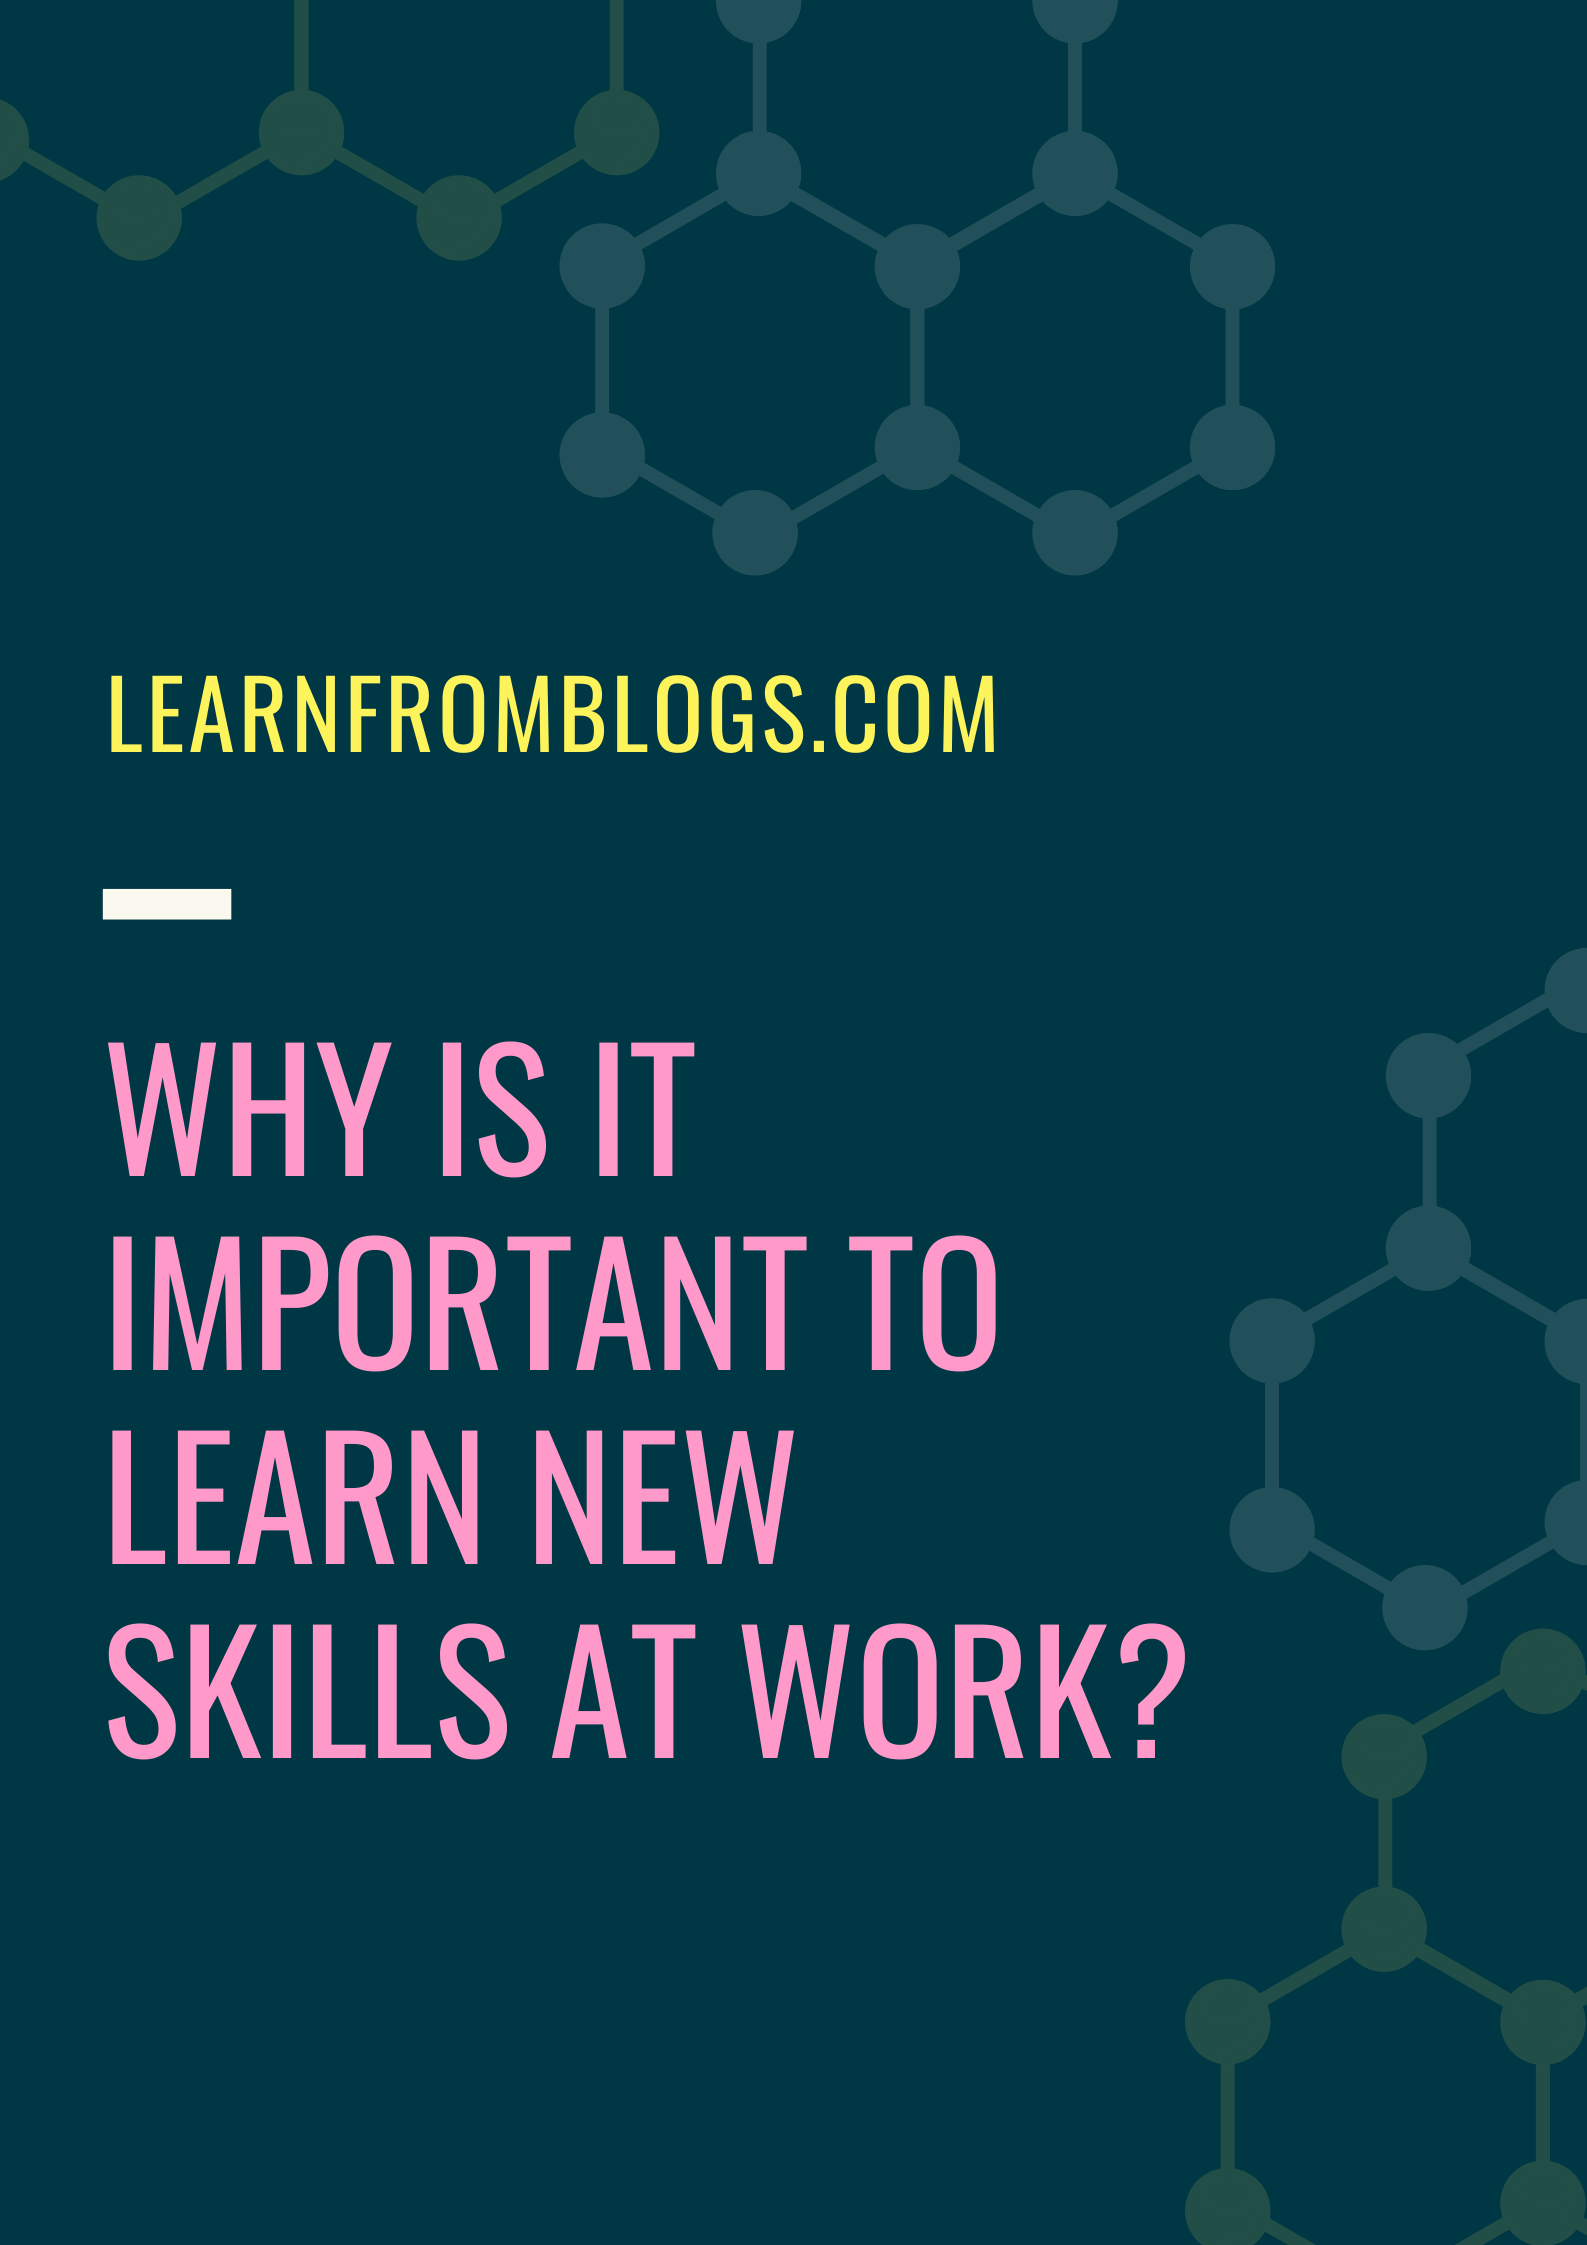 WHY IS IT IMPORTANT TO LEARN NEW SKILLS AT WORK?.png